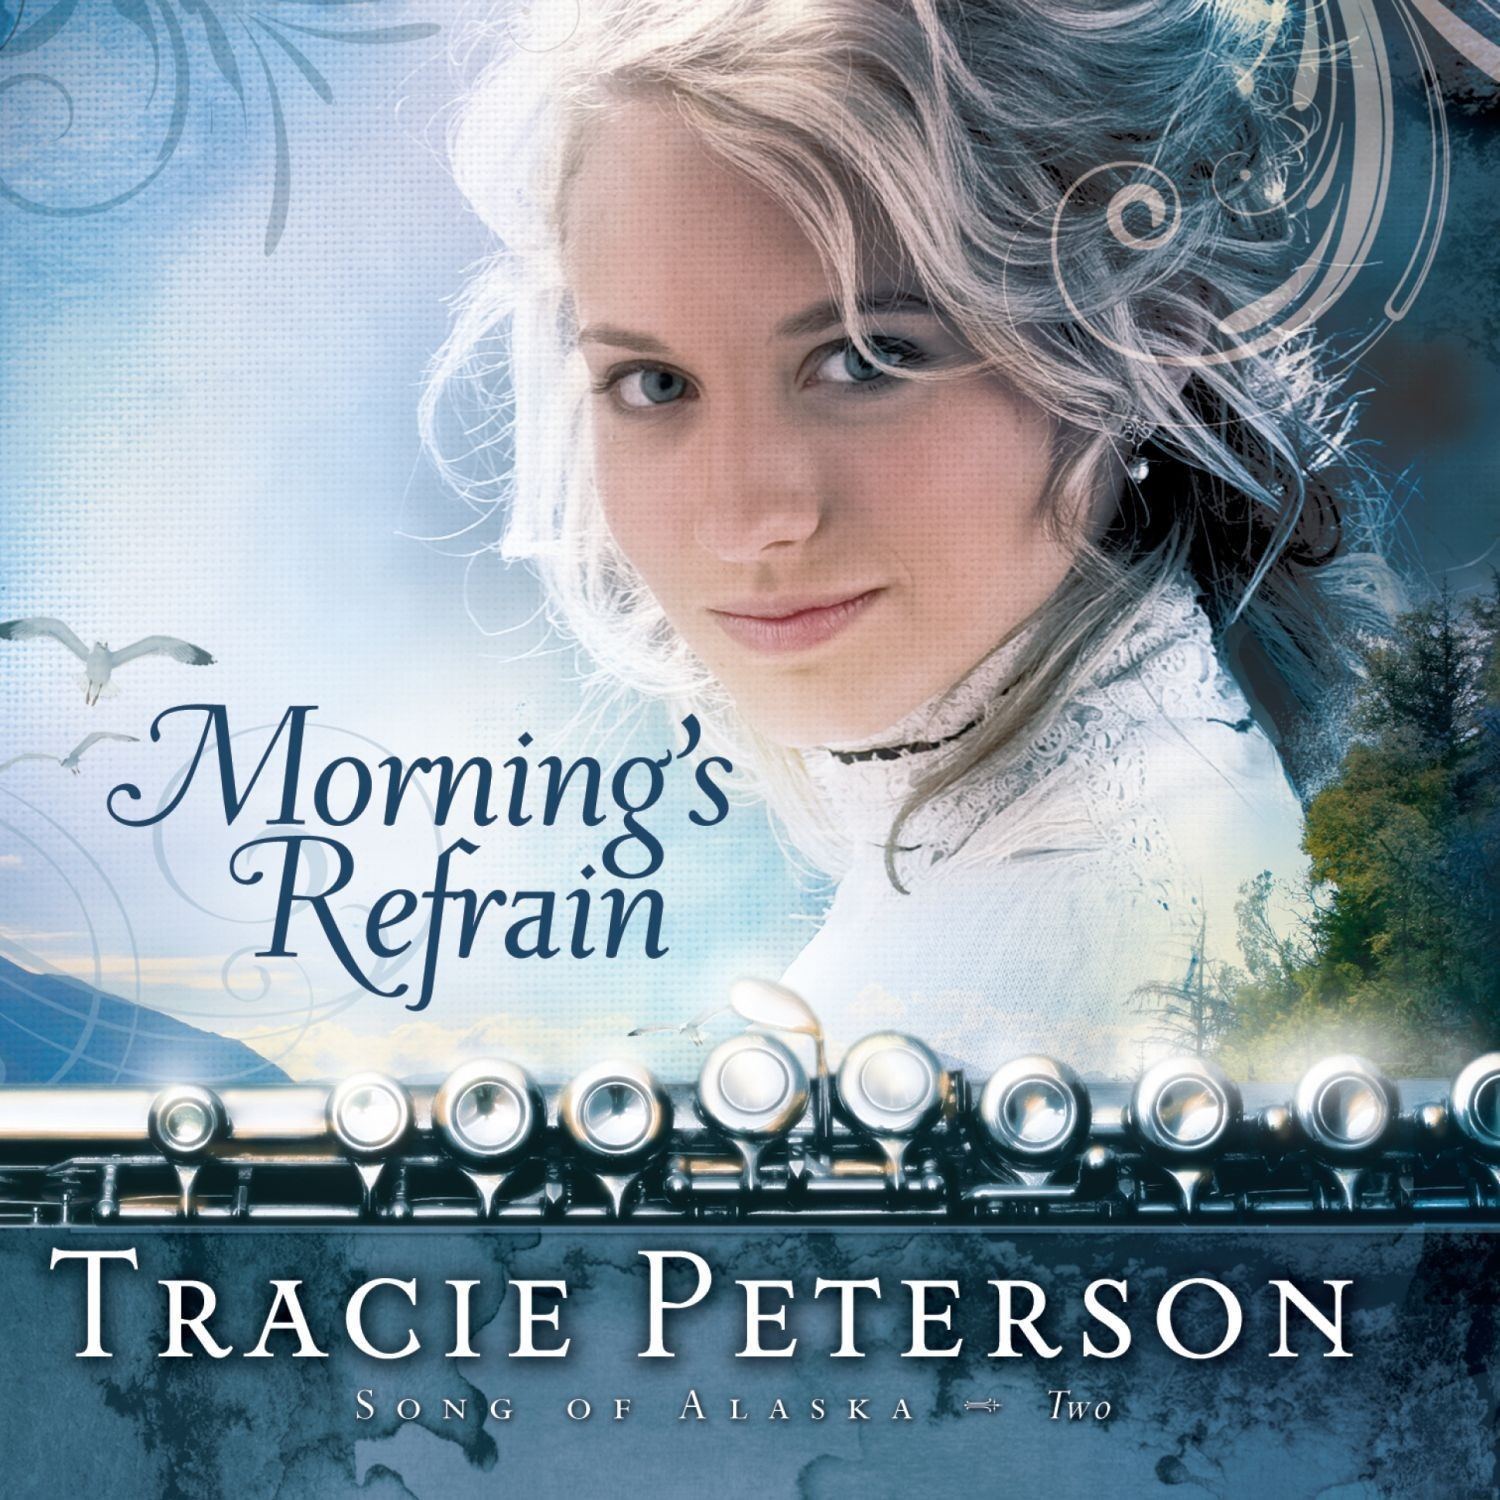 Printable Morning's Refrain Audiobook Cover Art